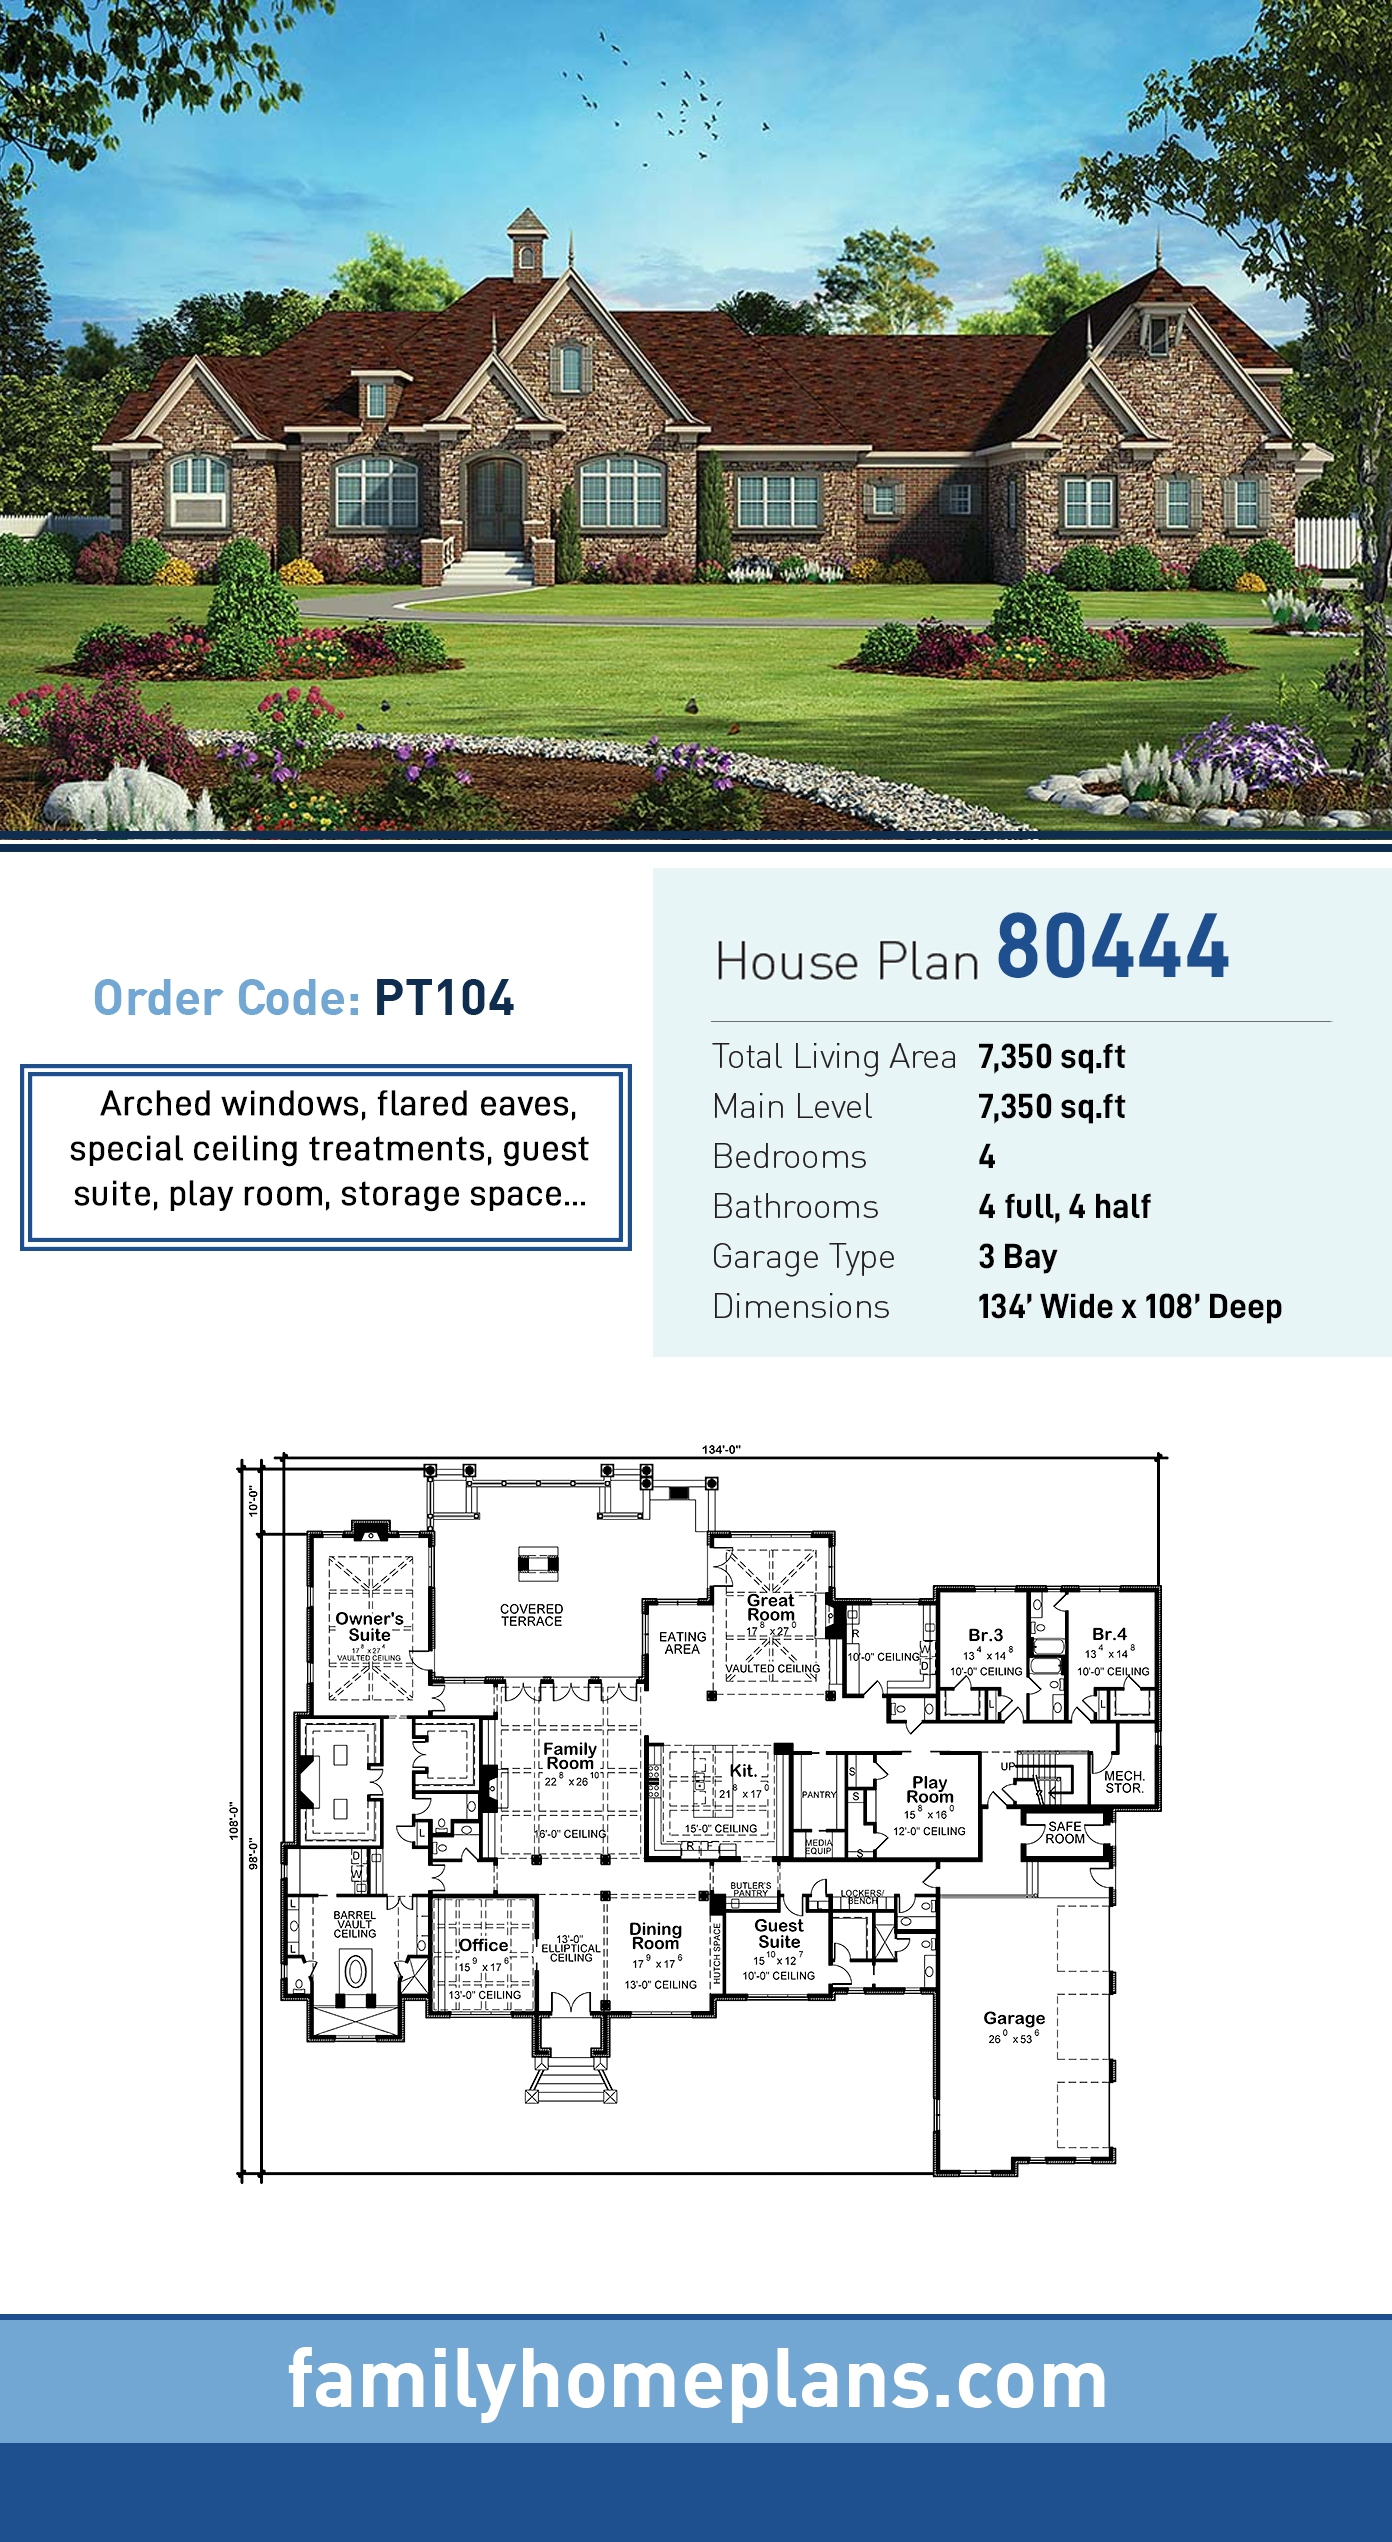 European, French Country House Plan 80444 with 4 Beds, 8 Baths, 3 Car Garage